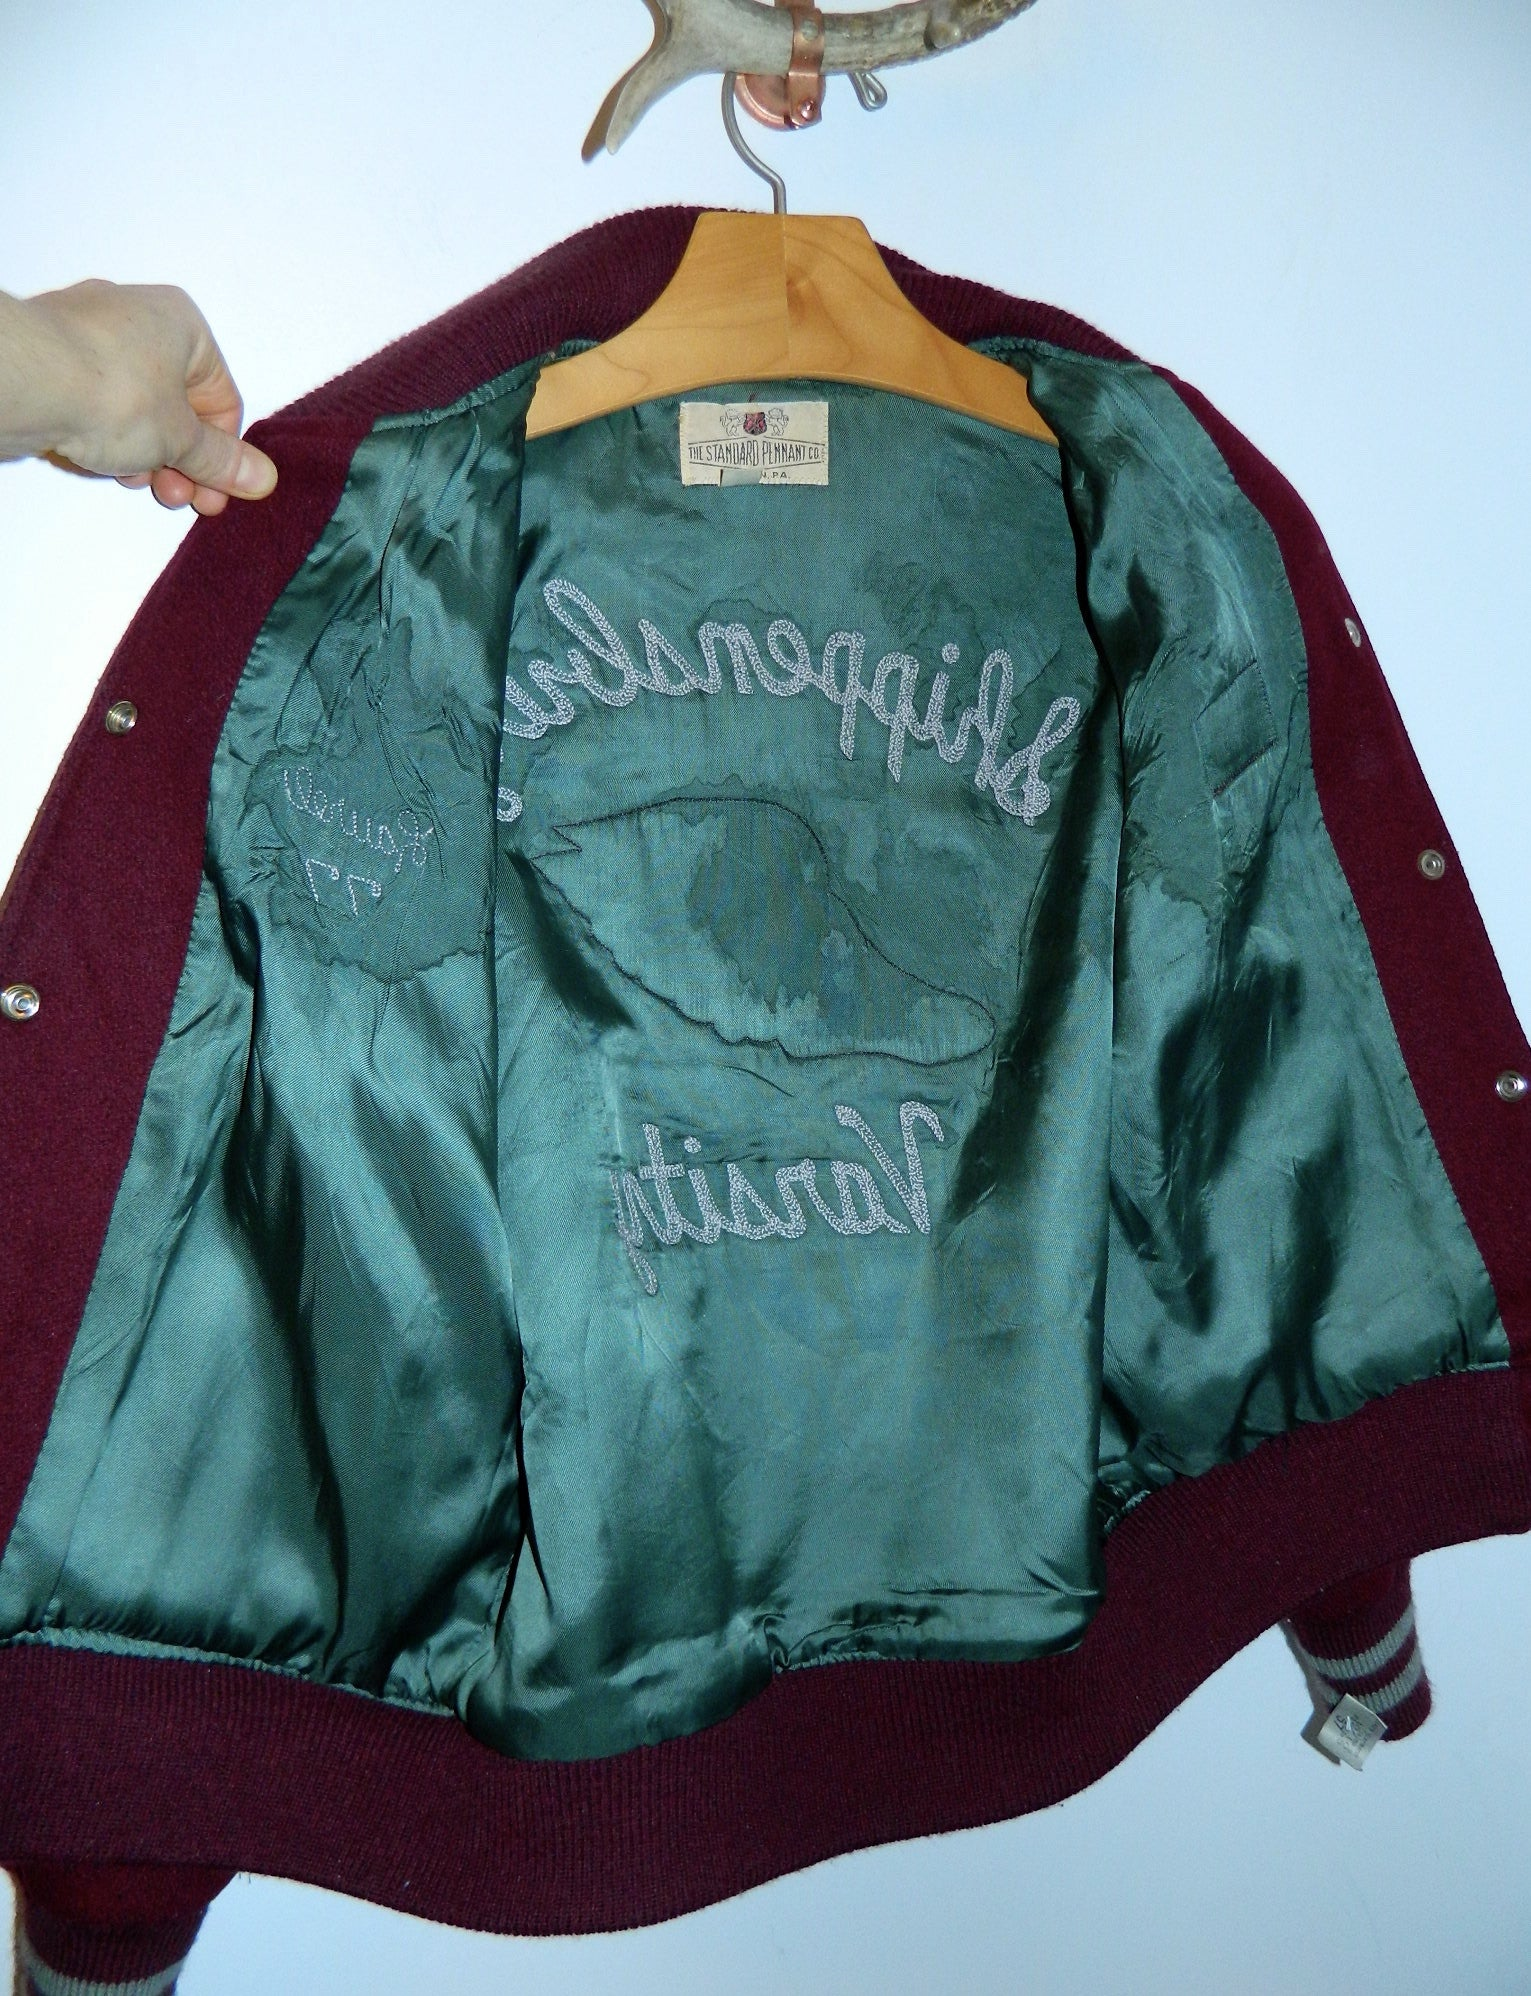 vintage 1970s wool varsity jacket womens track and field Shippensburg, PA